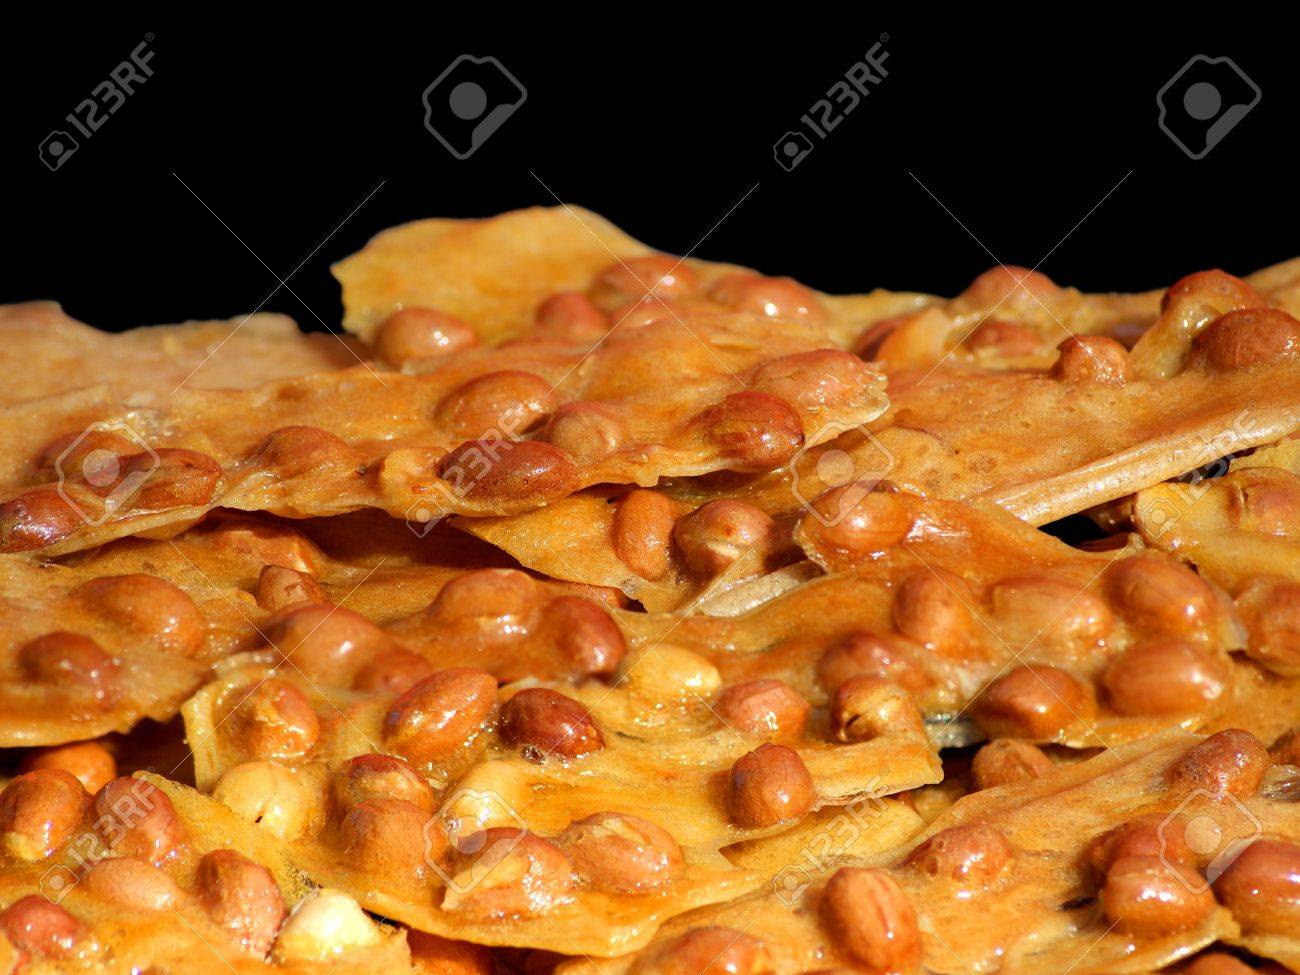 Close view of peanut brittle against black background. Stock Photo - 8605030